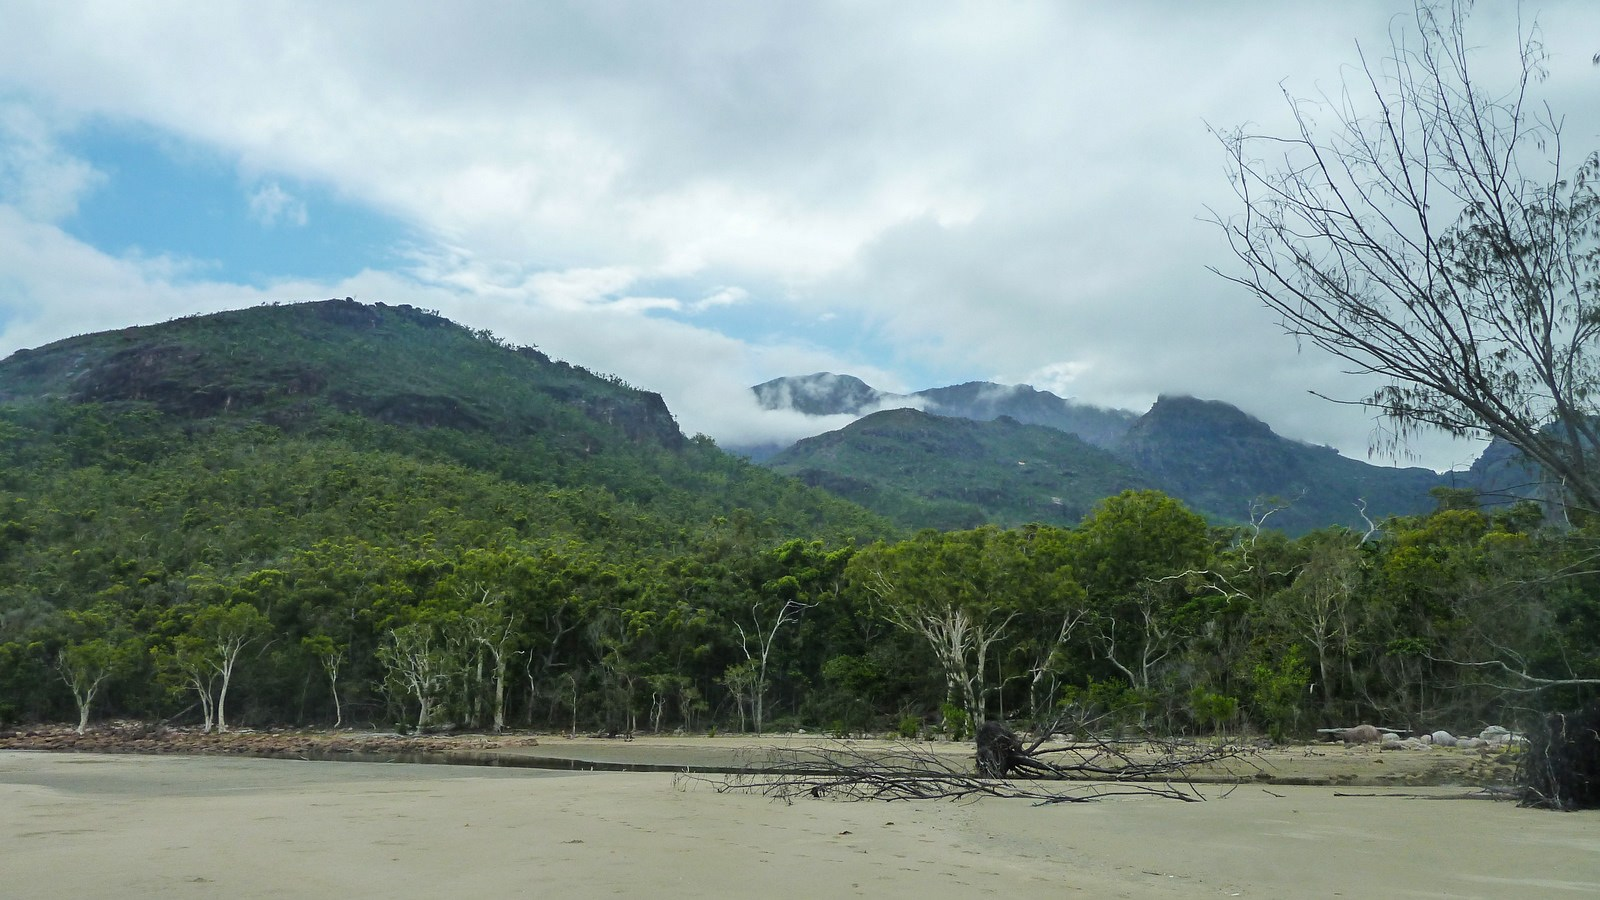 this is a photo of the mountains covered in clouds during a hike on hinchinbrook island